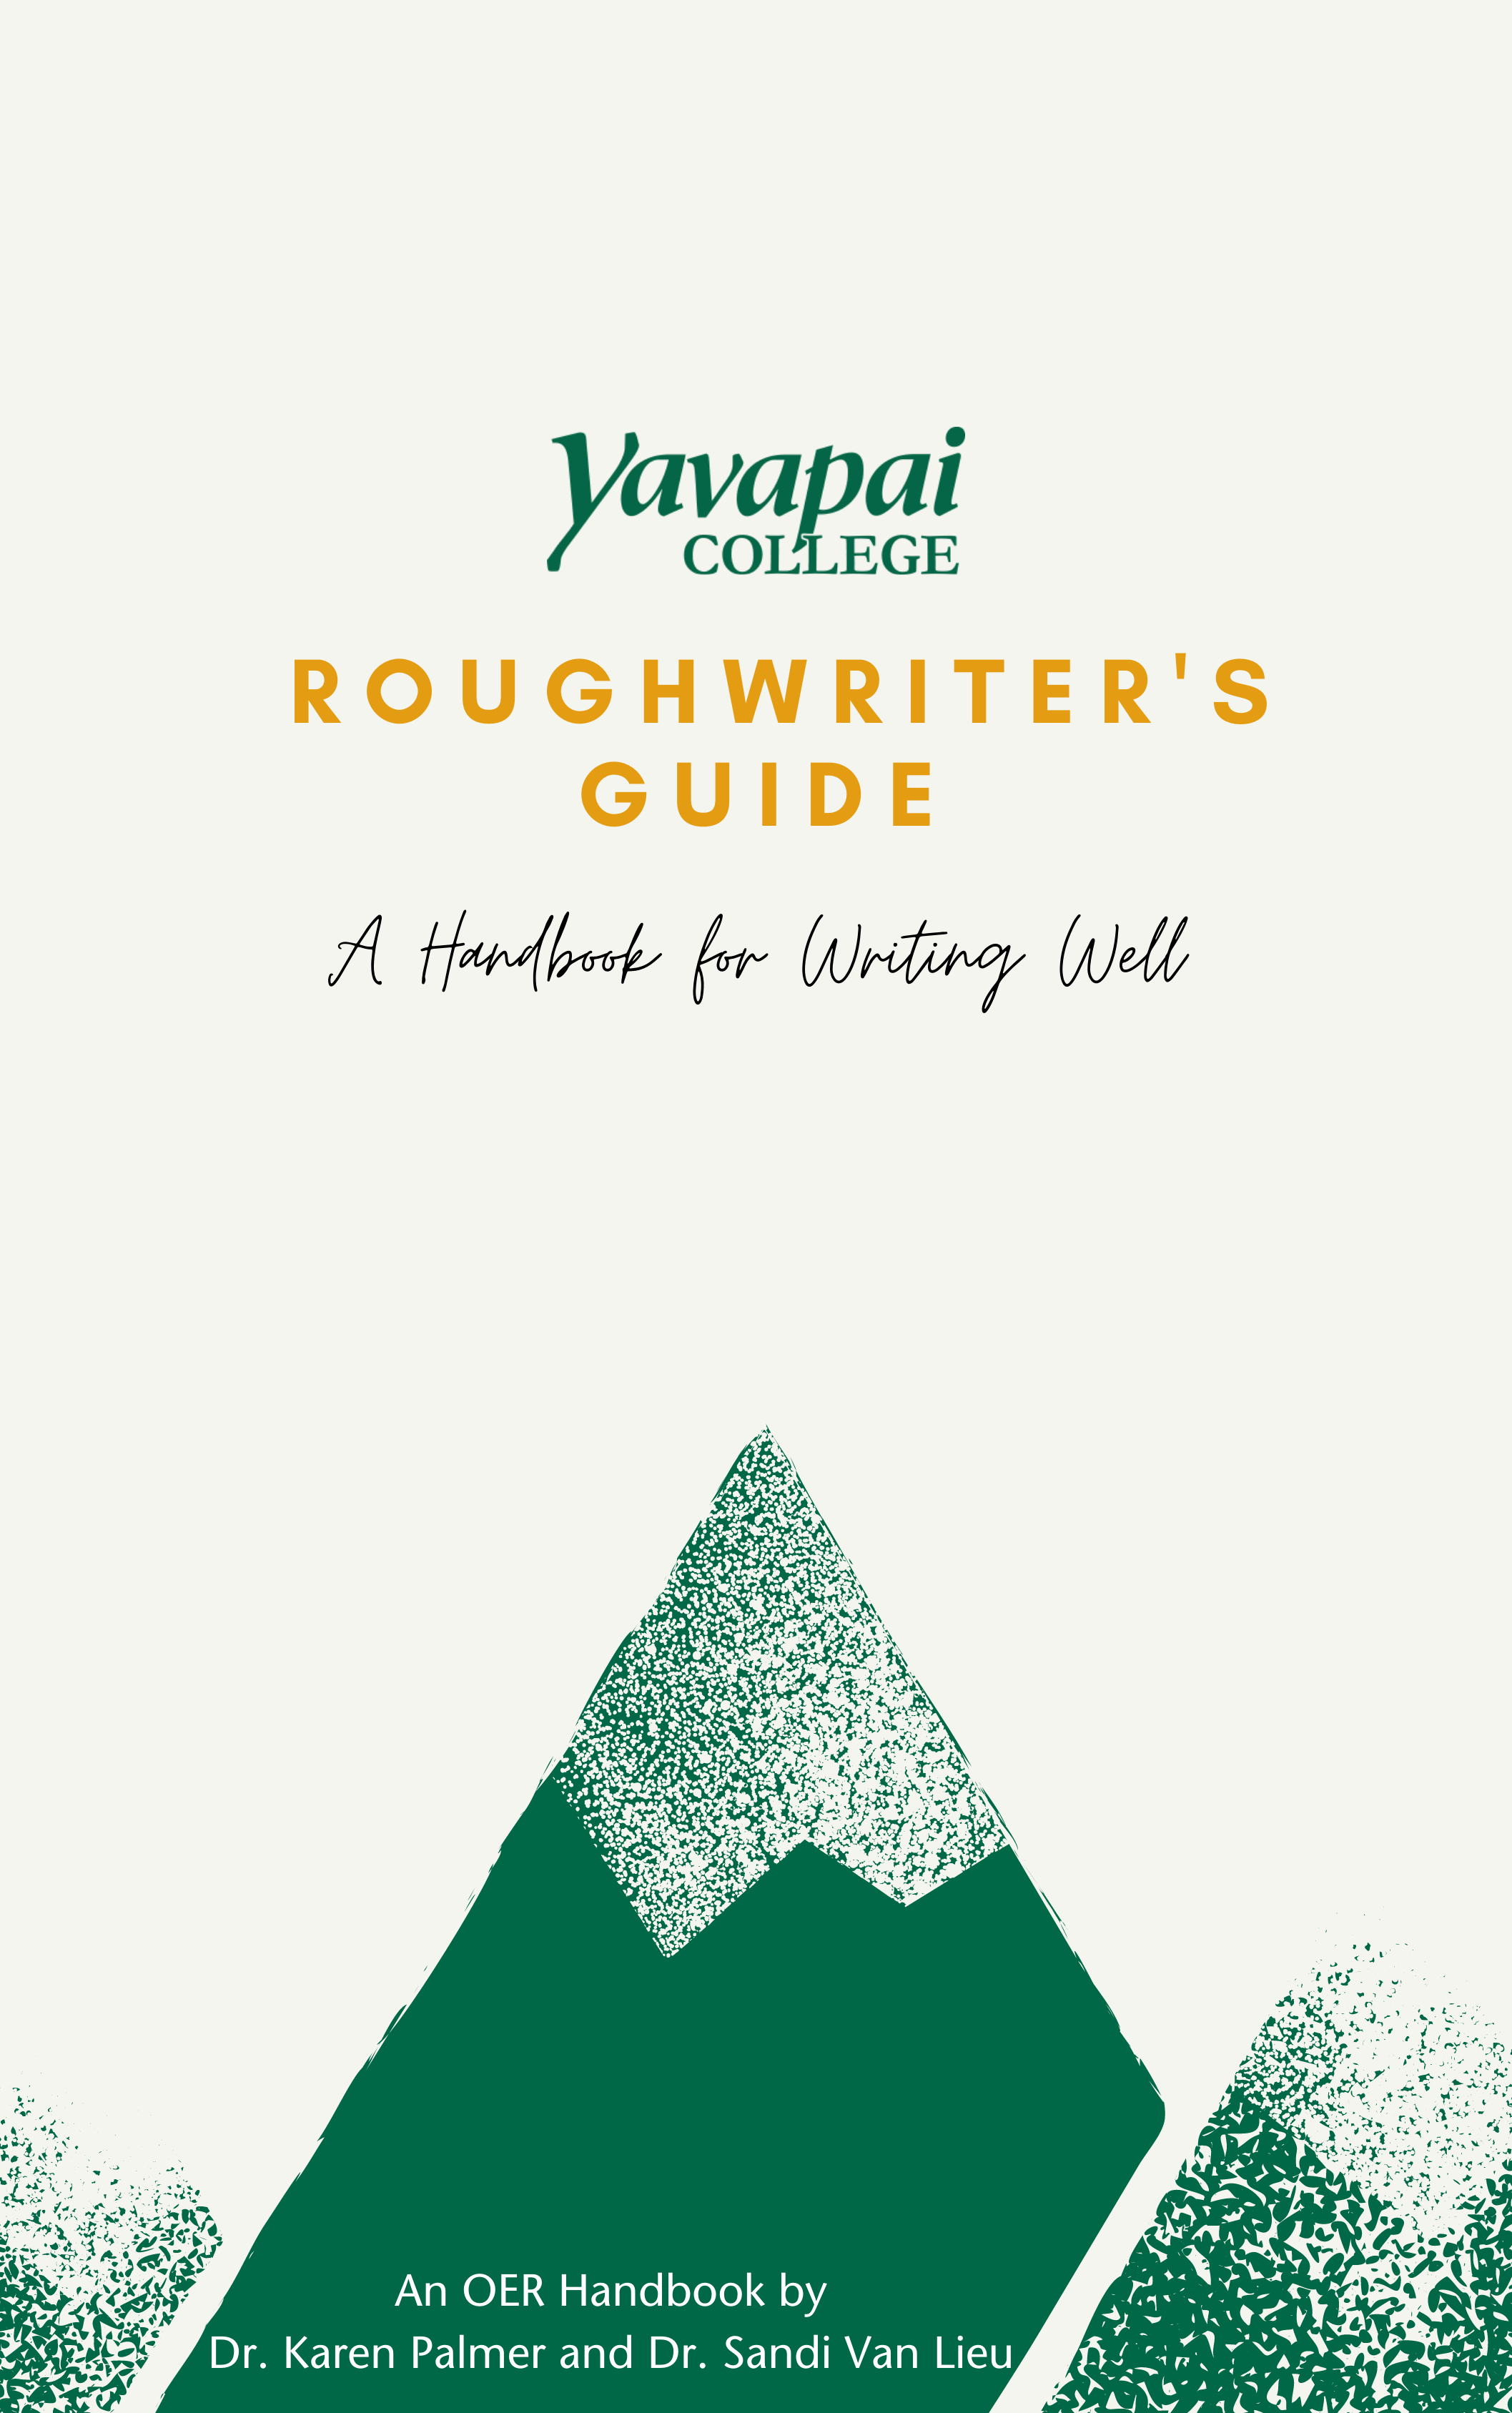 Roughwriter's Guide